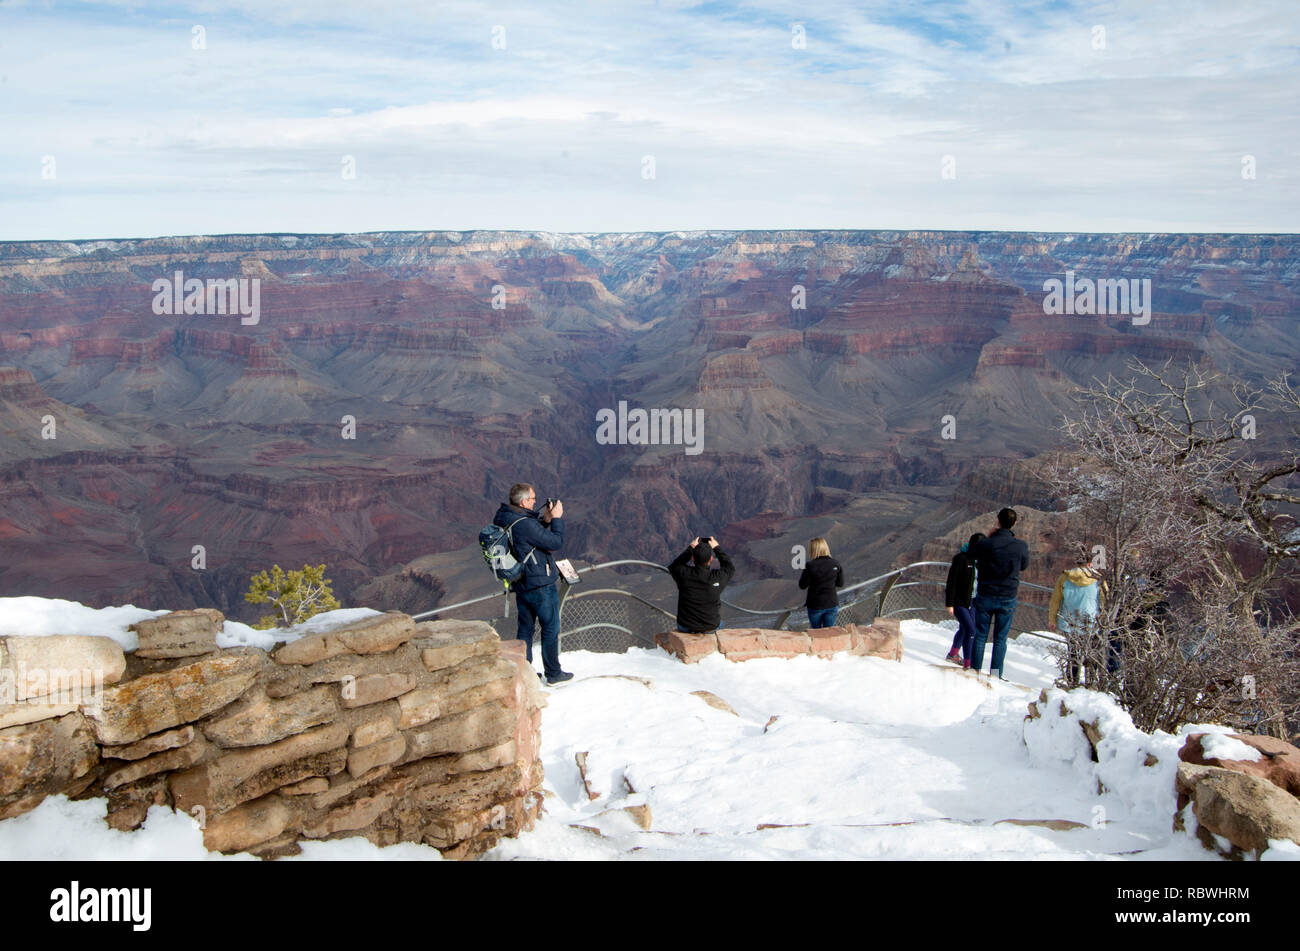 The Grand Canyon is an immense natural wonder. Located in Northern Arizona, the canyon is one mile deep on average, 18 miles wide and 277 miles long. - Stock Image